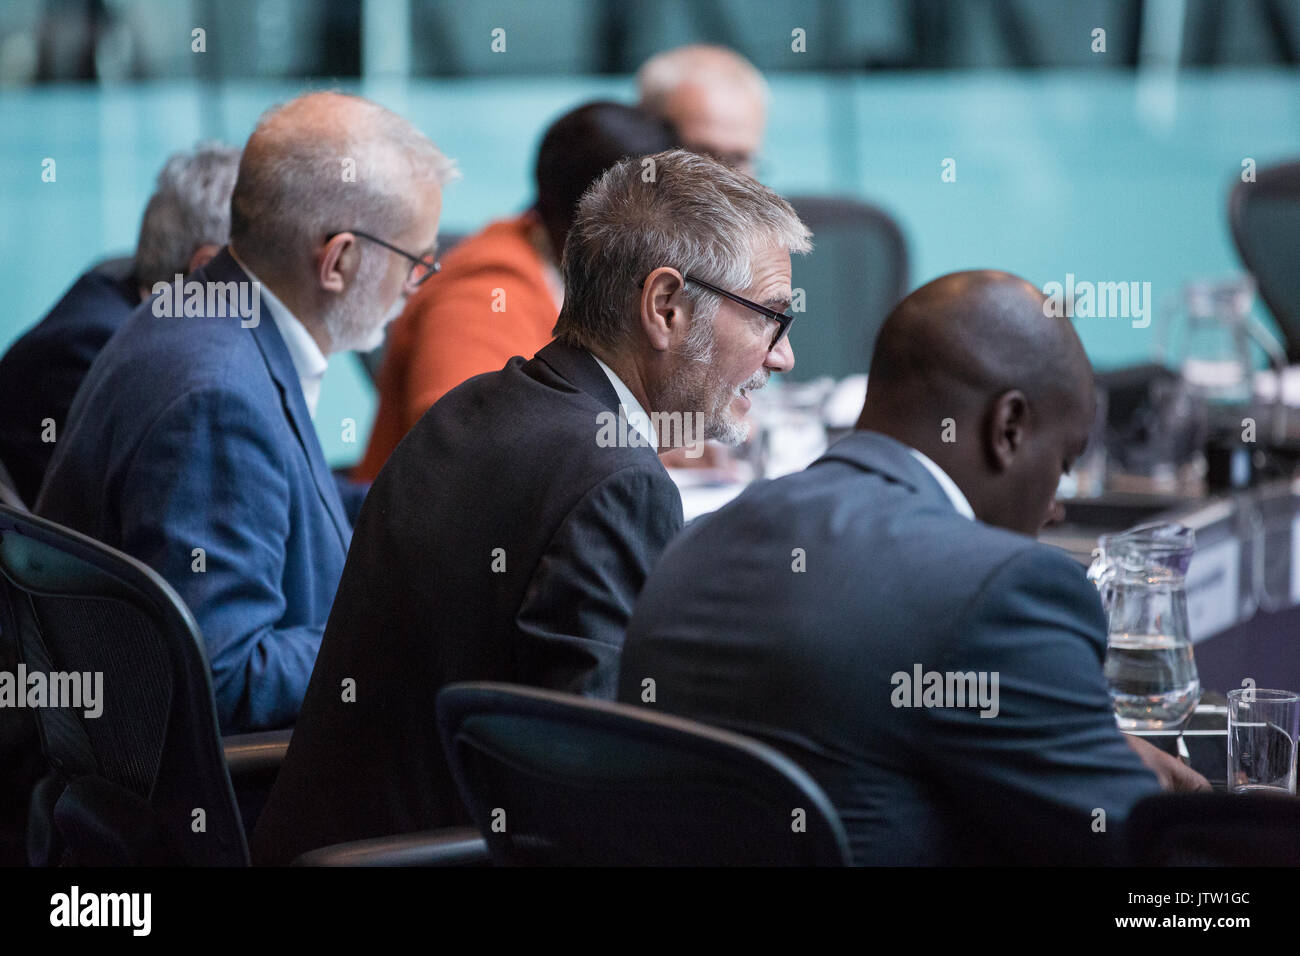 London, UK. 10th August, 2017. London Assembly Member Steve O'Connell puts a question to Mayor of London Sadiq Khan during Mayor's Question Time at City Hall. Among topics discussed were: acid attacks, social housing, expenditure on fire and police services, 4G coverage on underground trains and noise from overnight underground trains. Credit: Mark Kerrison/Alamy Live News - Stock Image